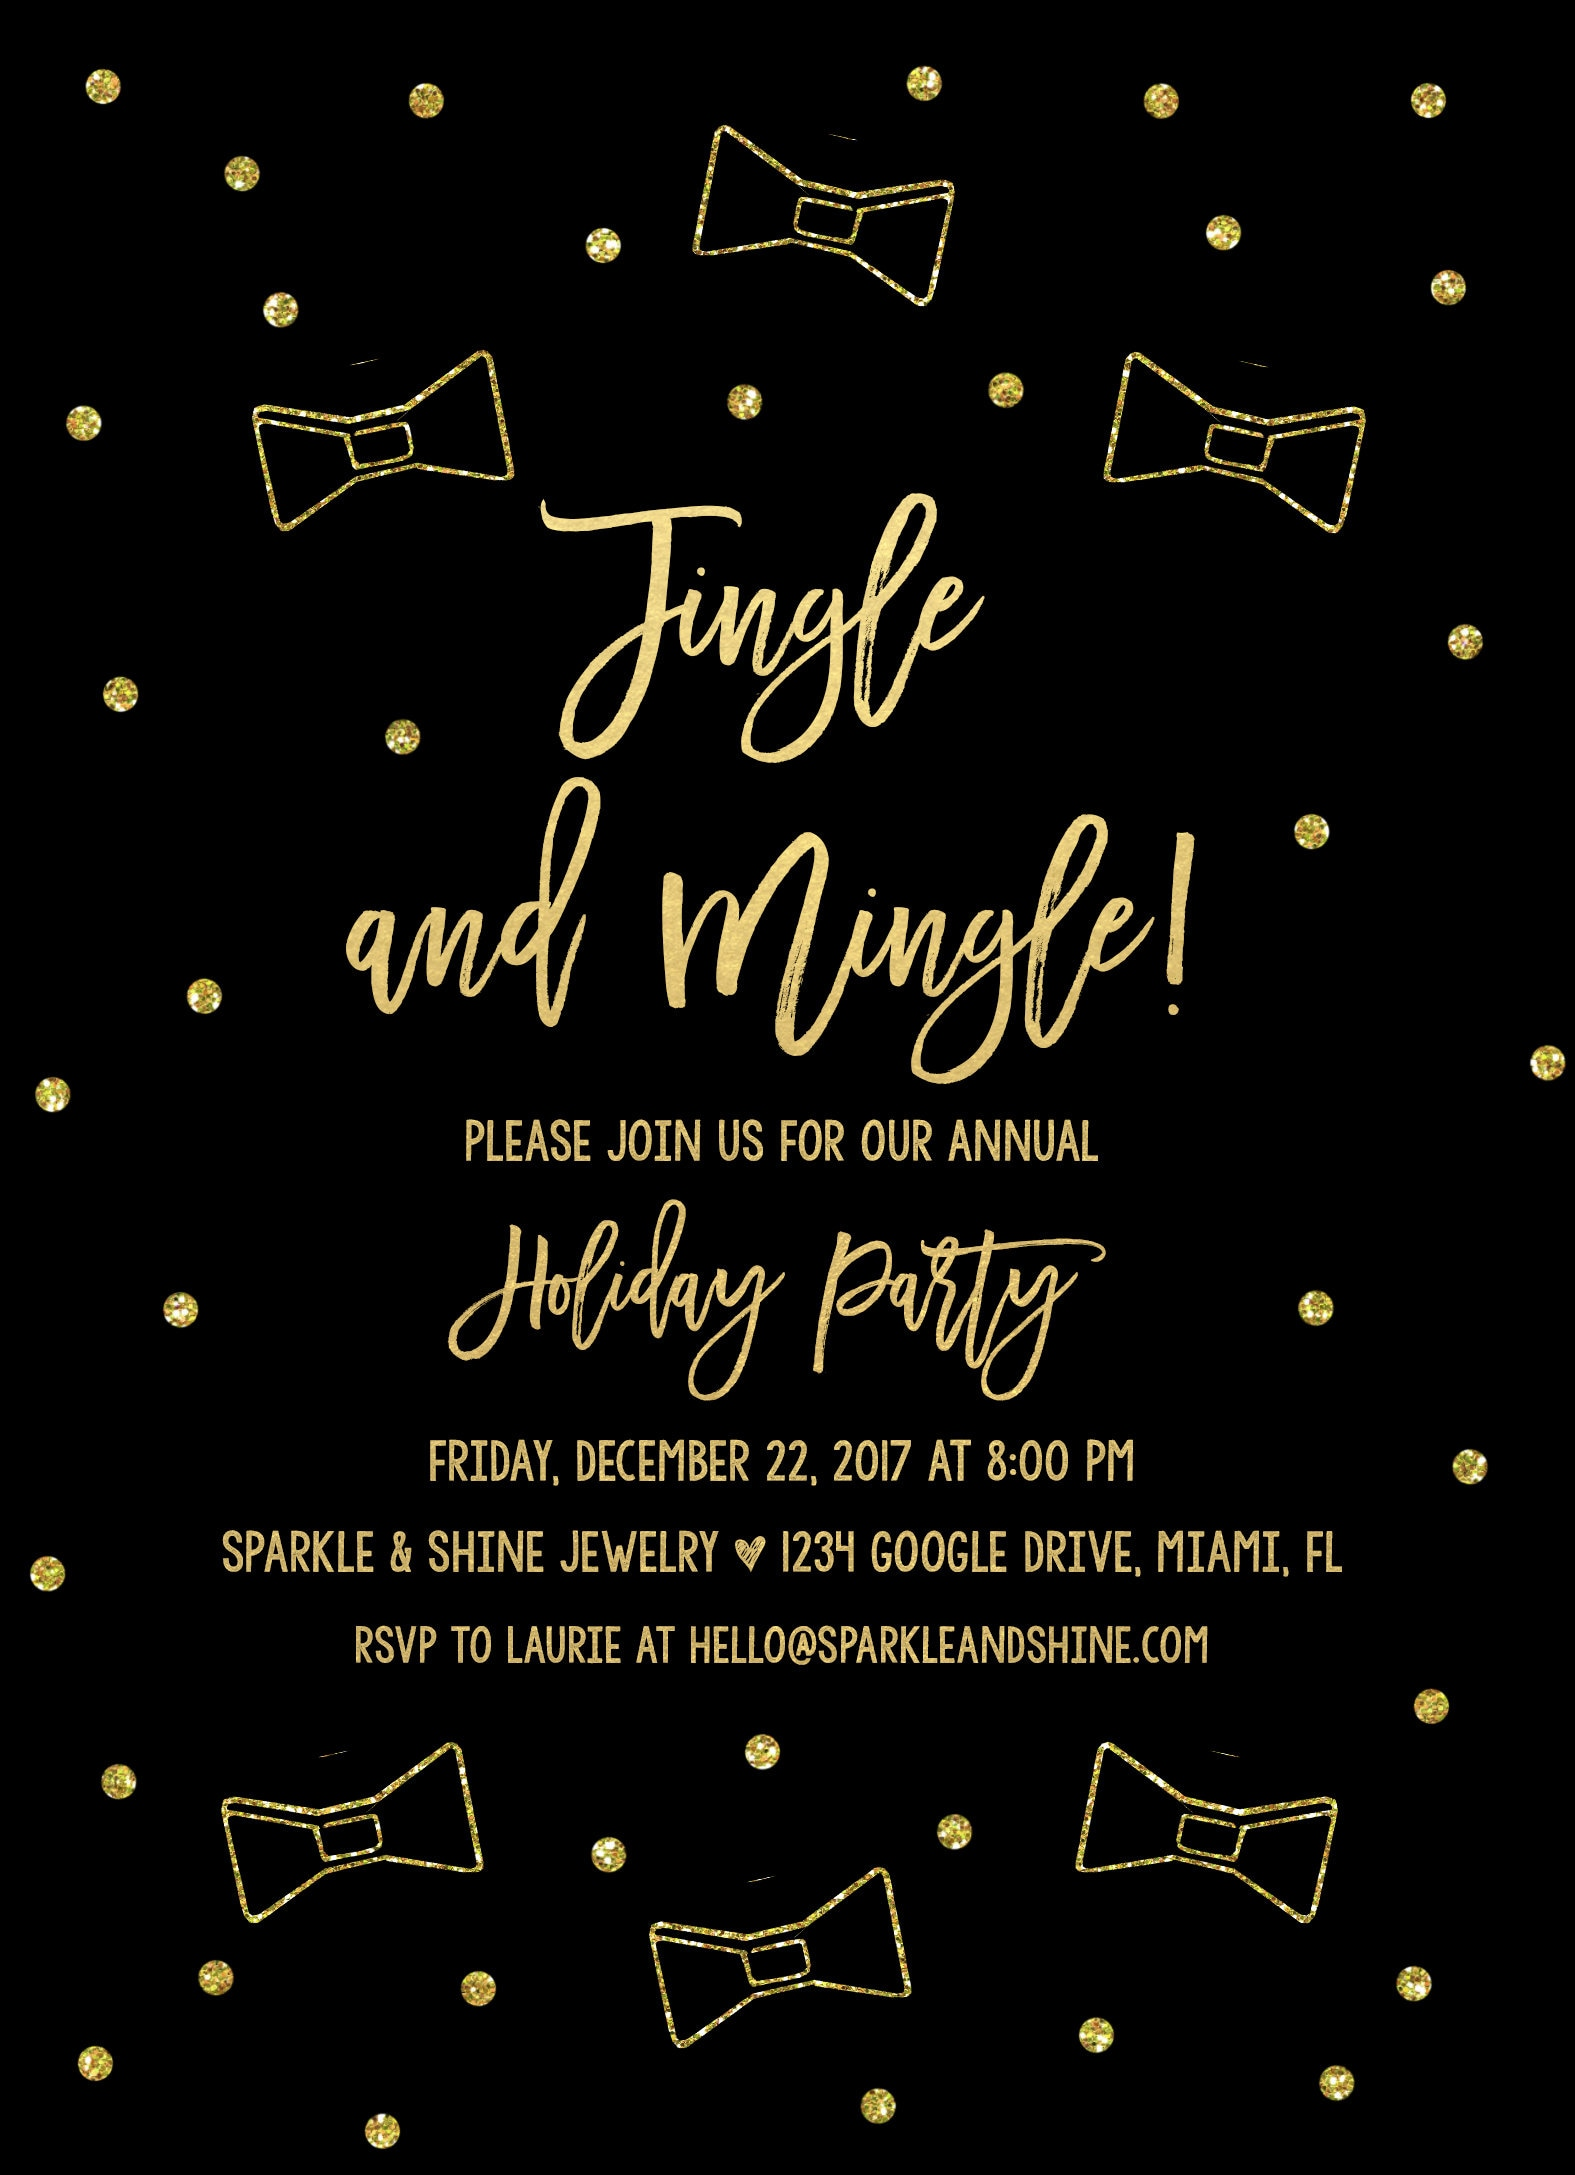 Office Holiday Party Invitation, Jingle and Mingle Invitations ...